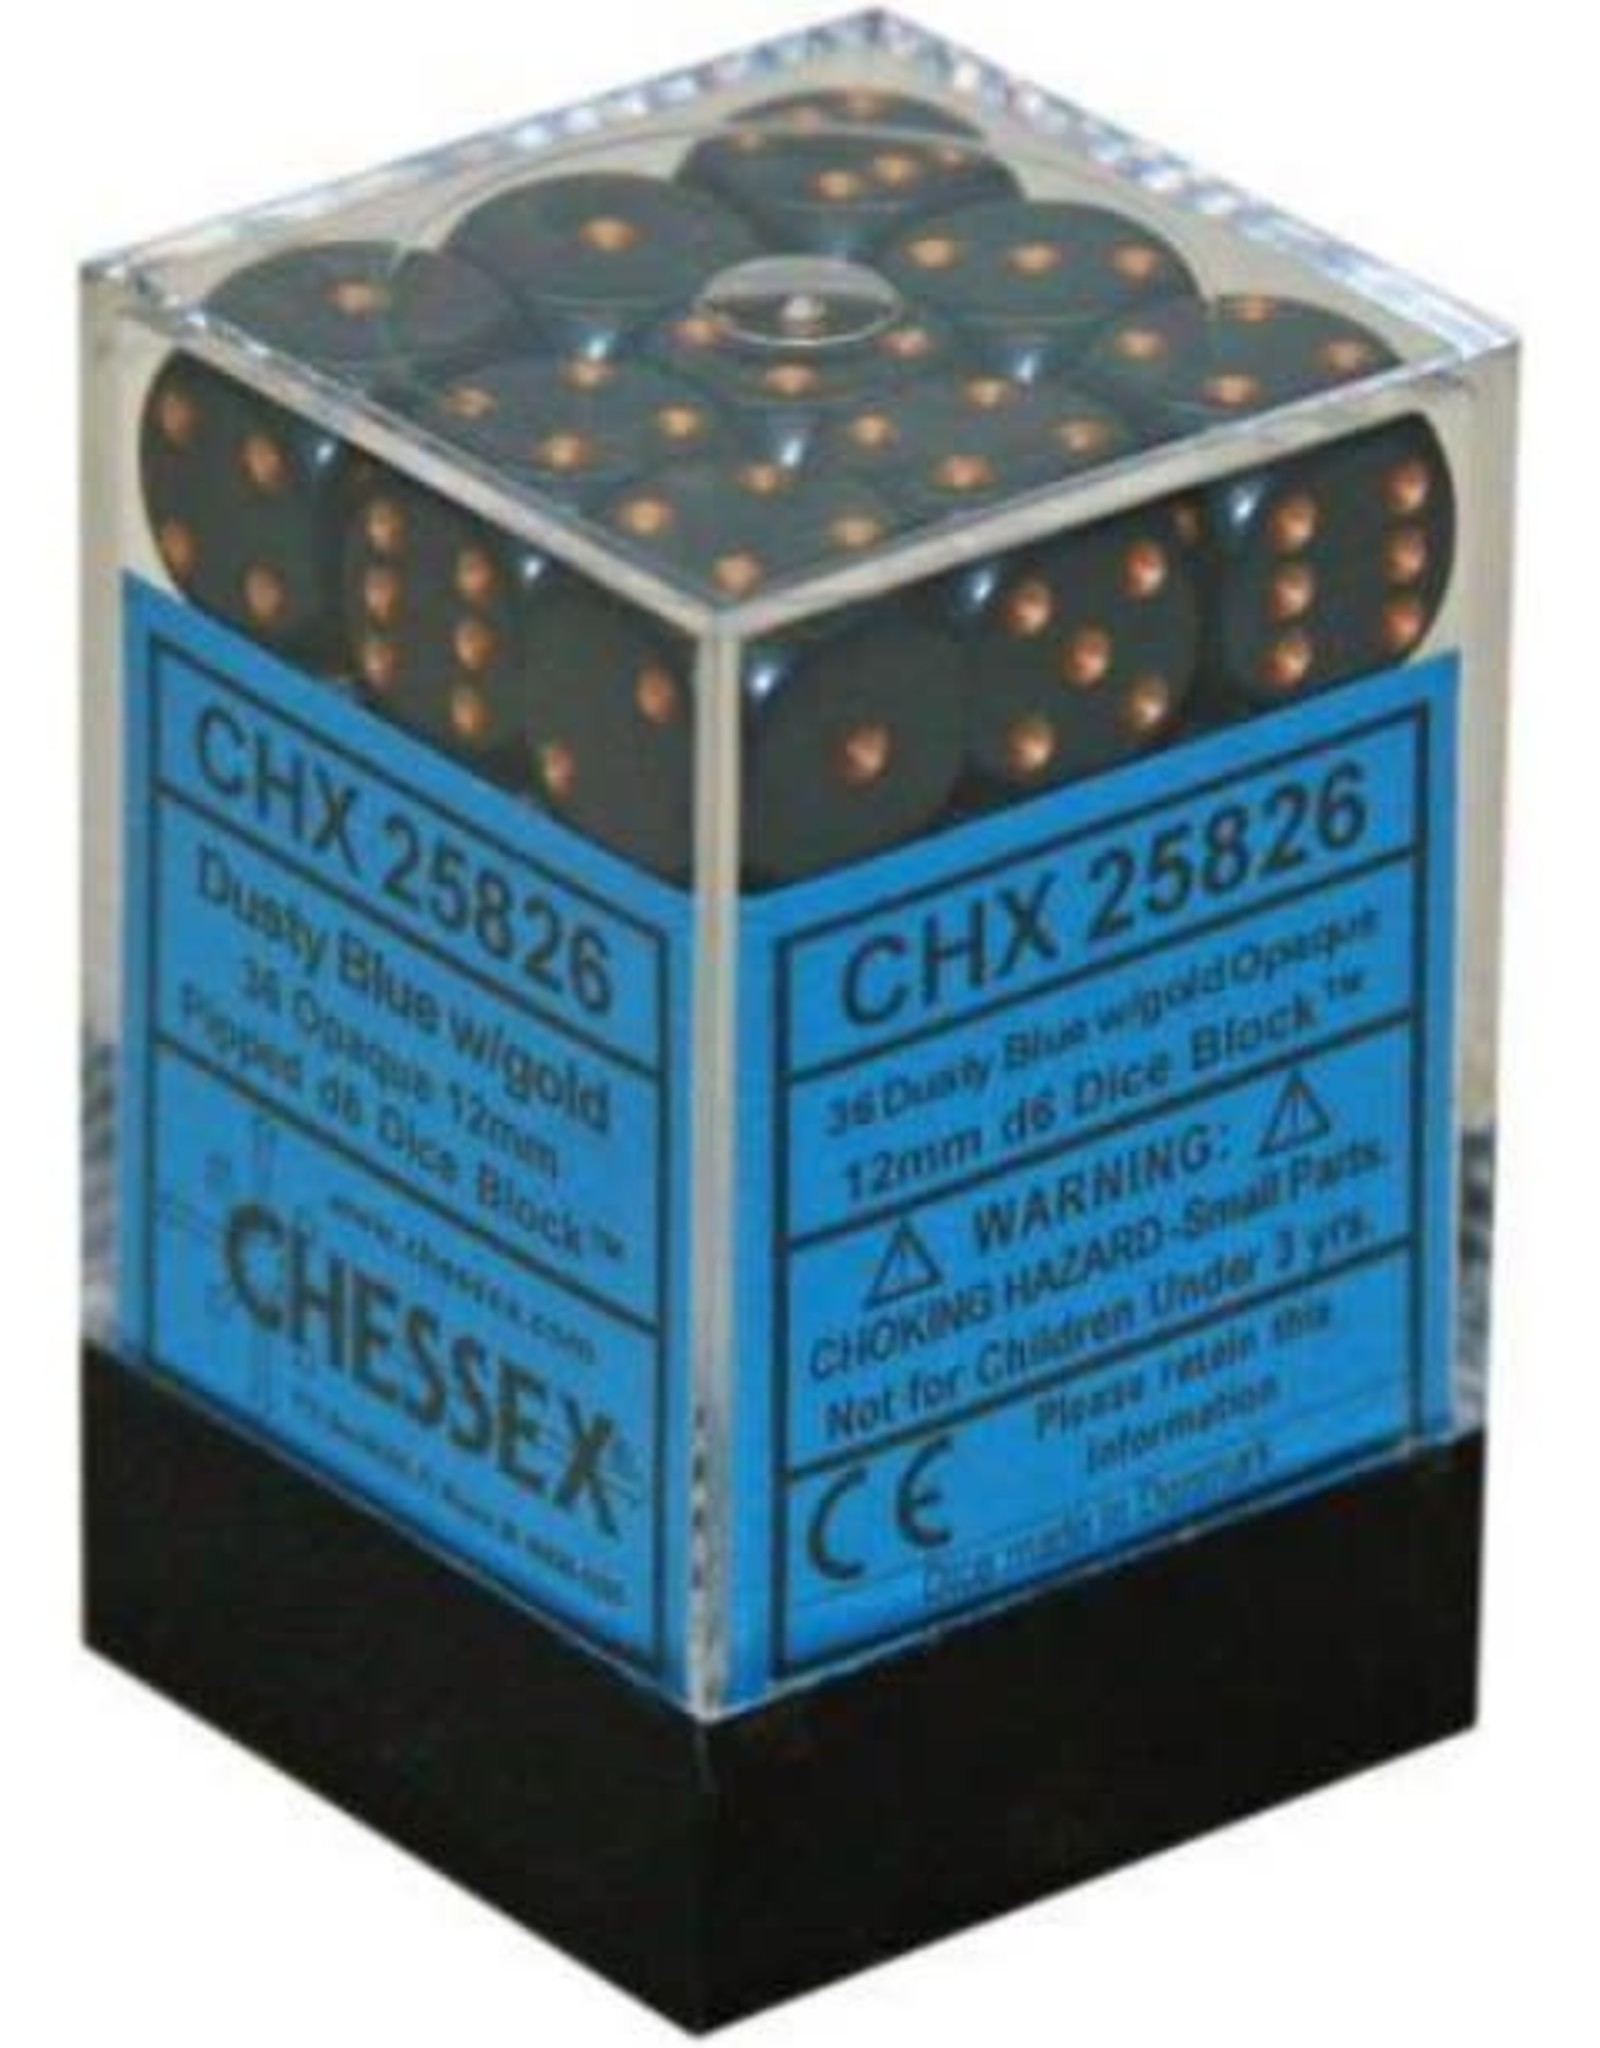 Chessex D6 12mm Dusty Blue w/Copper (36) New